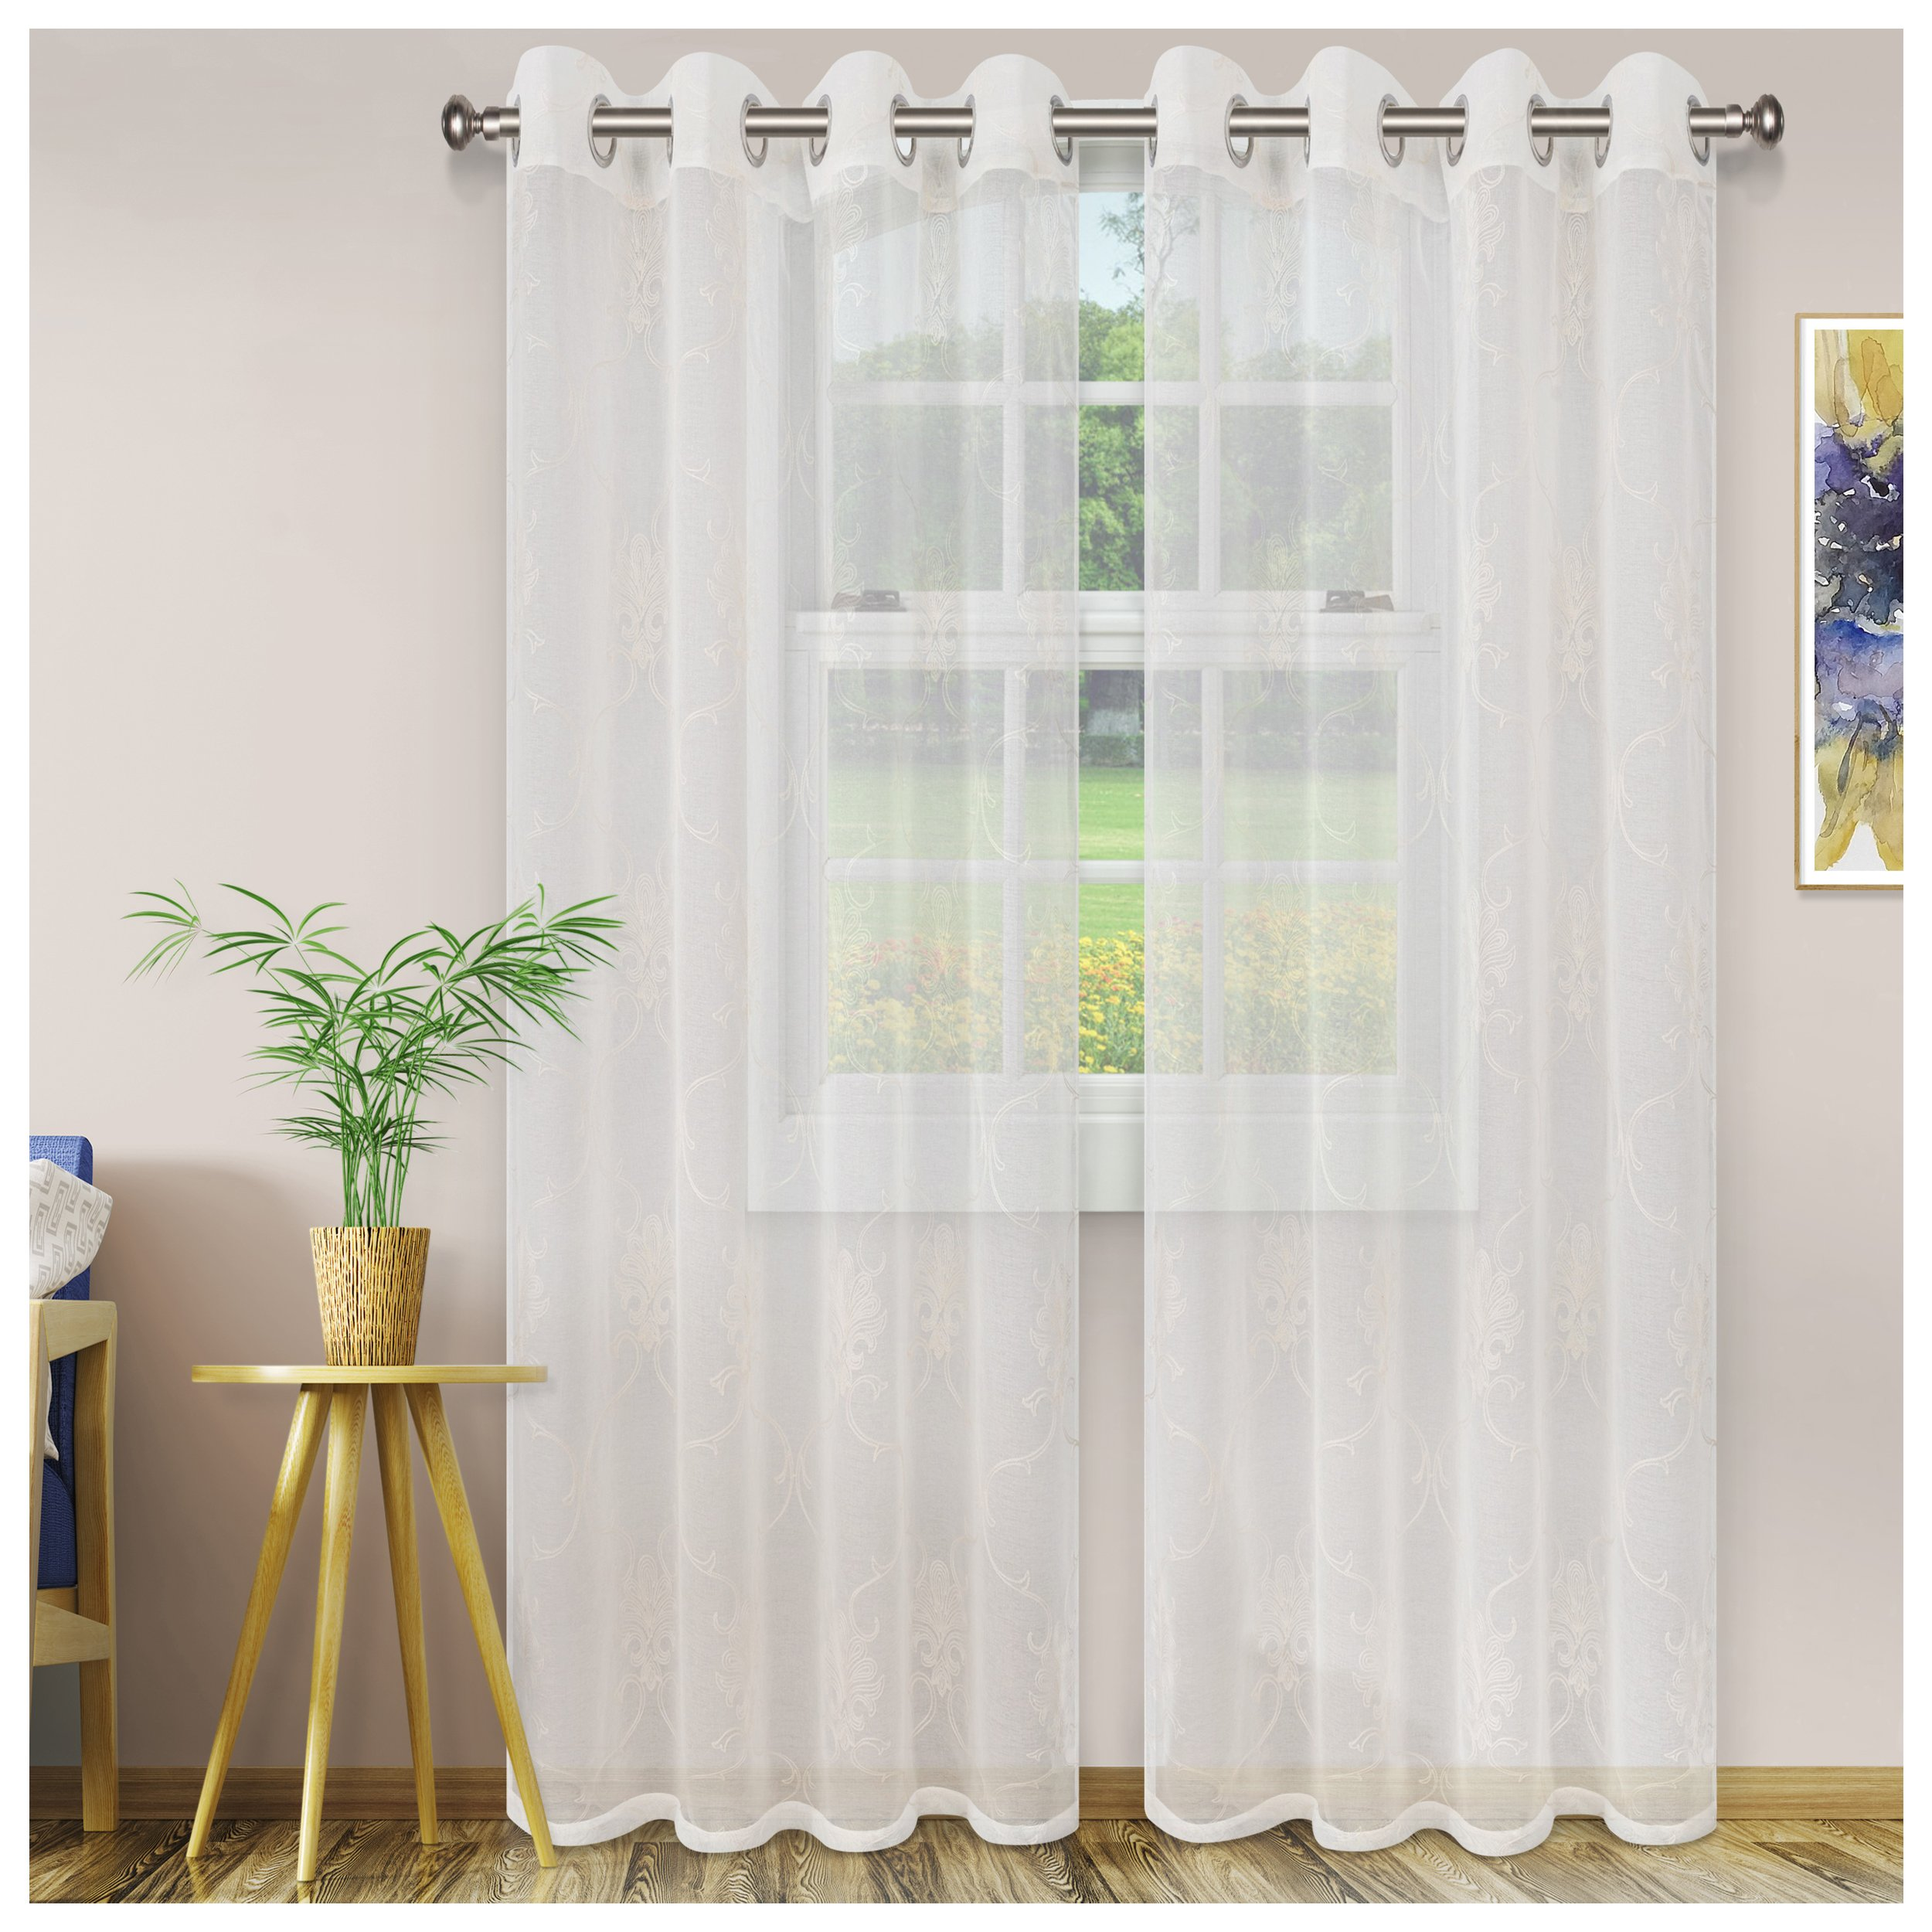 Superior Quality Lightweight Embroidered Elegant Scroll Sheer Stainless Grommets Window Treatment Curtain Panel (Set of 2) 52'' x 108'' - Ivory by Superior